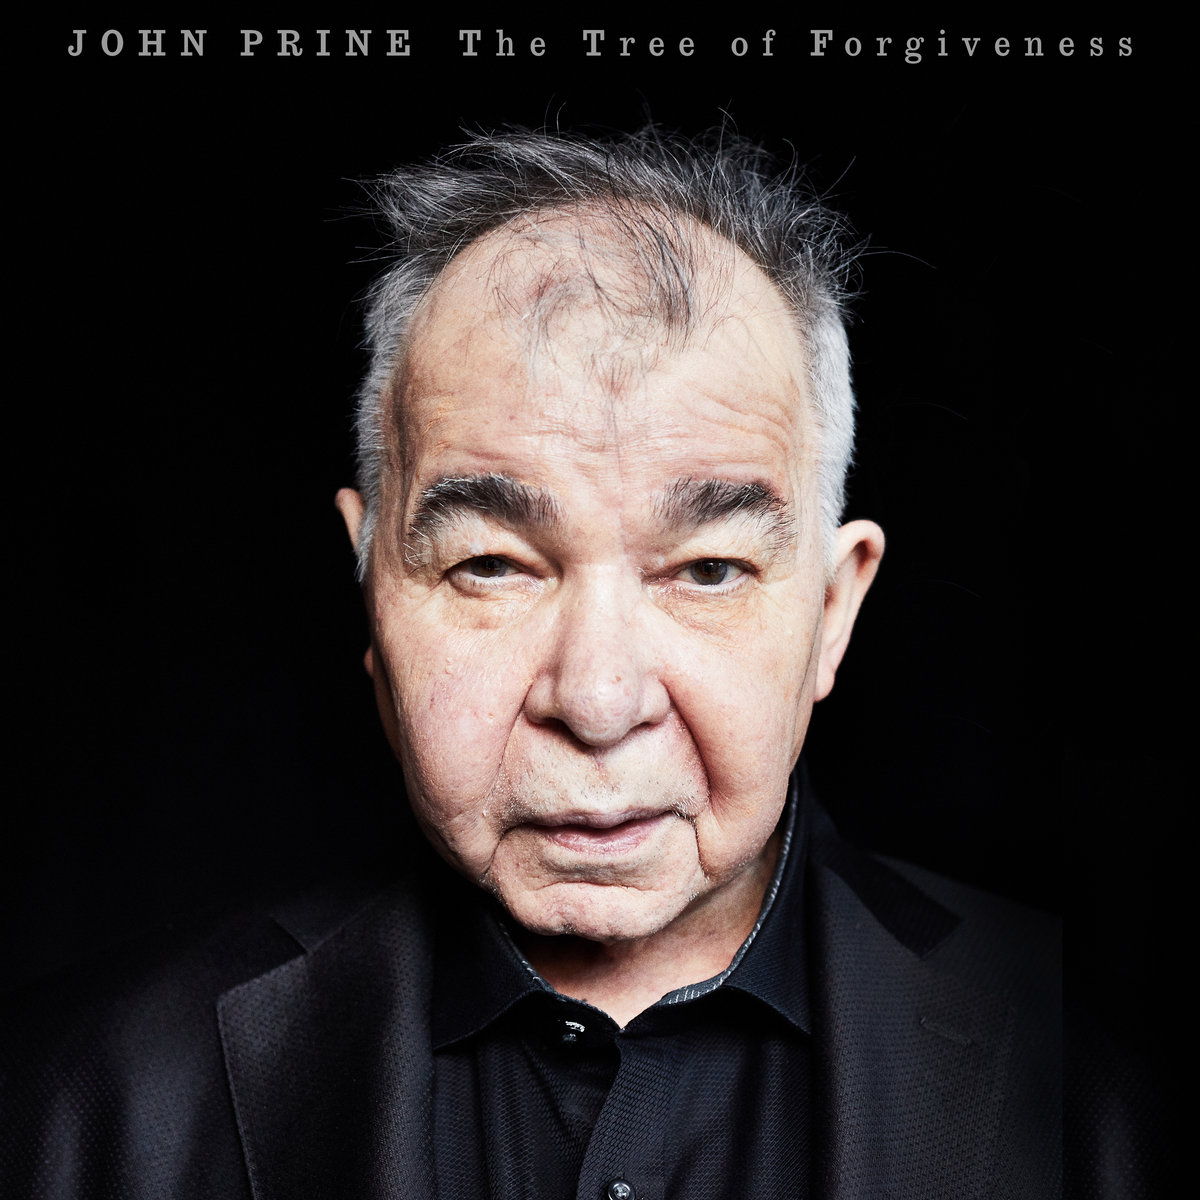 from The Tree of Forgiveness by John Prine  sc 1 st  John Prine - Bandc& & Knockin\u0027 On Your Scree Door | John Prine